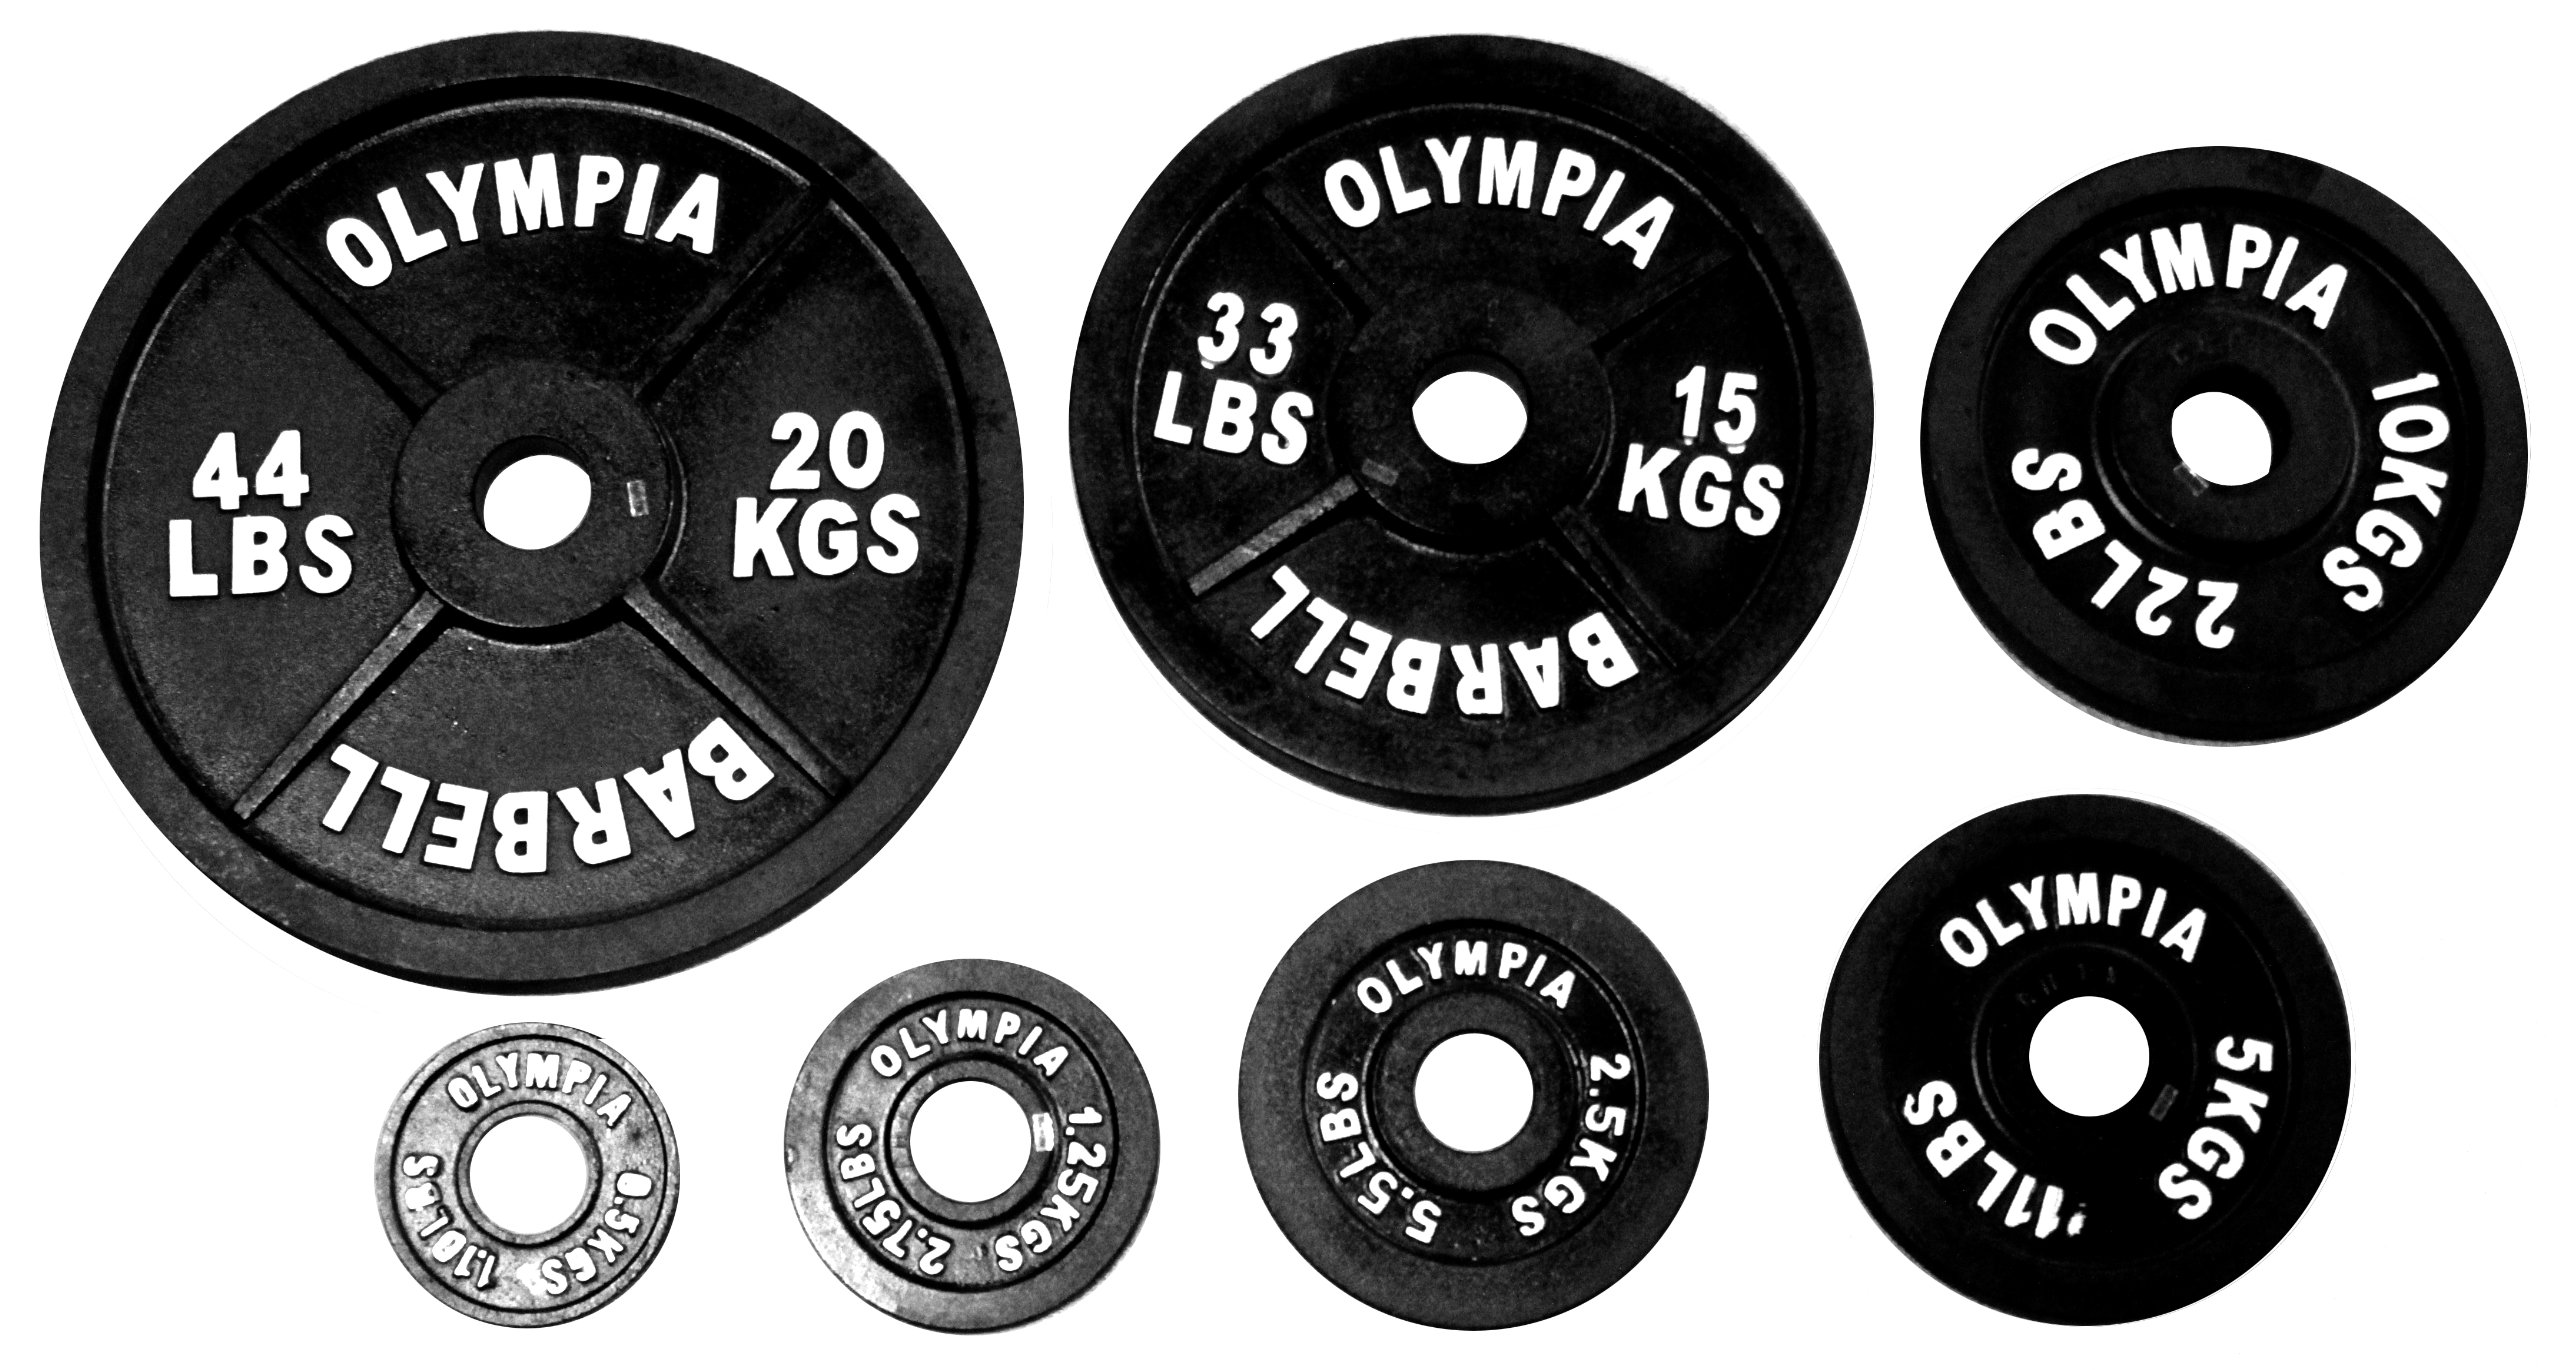 Ader Sports Black Olympic Plate 1.25, 2.5, 5, 10 Lbs 4 Pair (Total 37.5 Lbs)